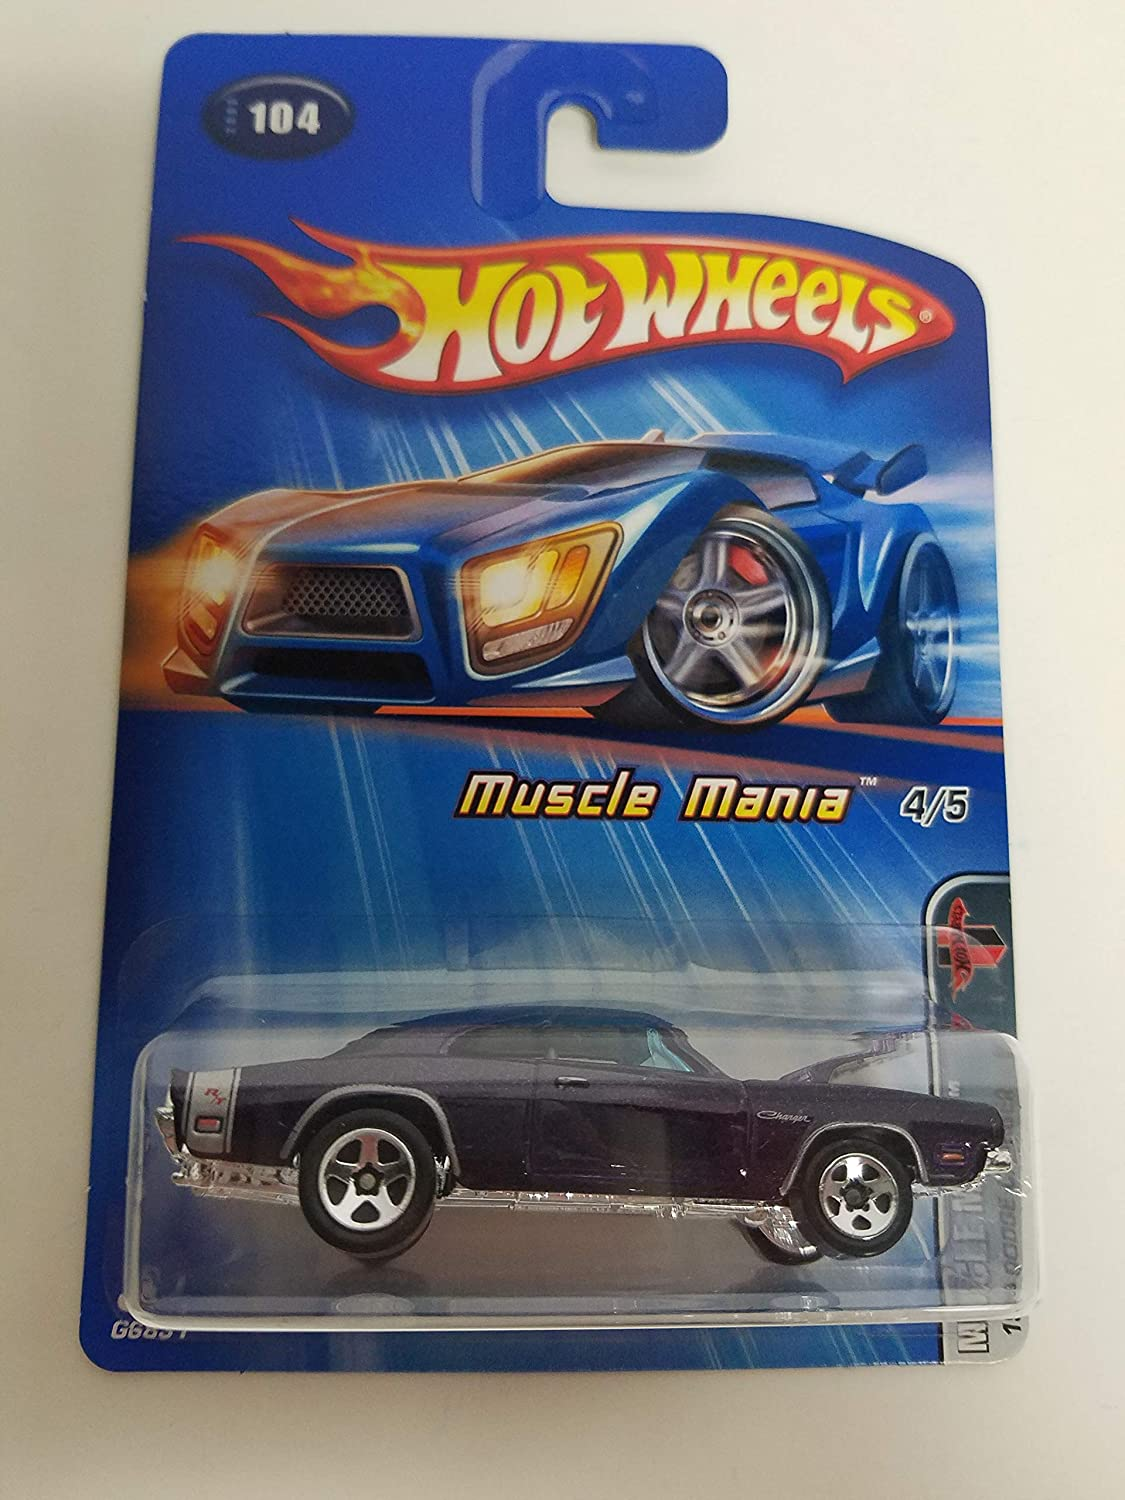 1969 Dodge Charger Purple Color Muscle Mania 4 of 5 2005 Editions Hot Wheels diecast car No. 104